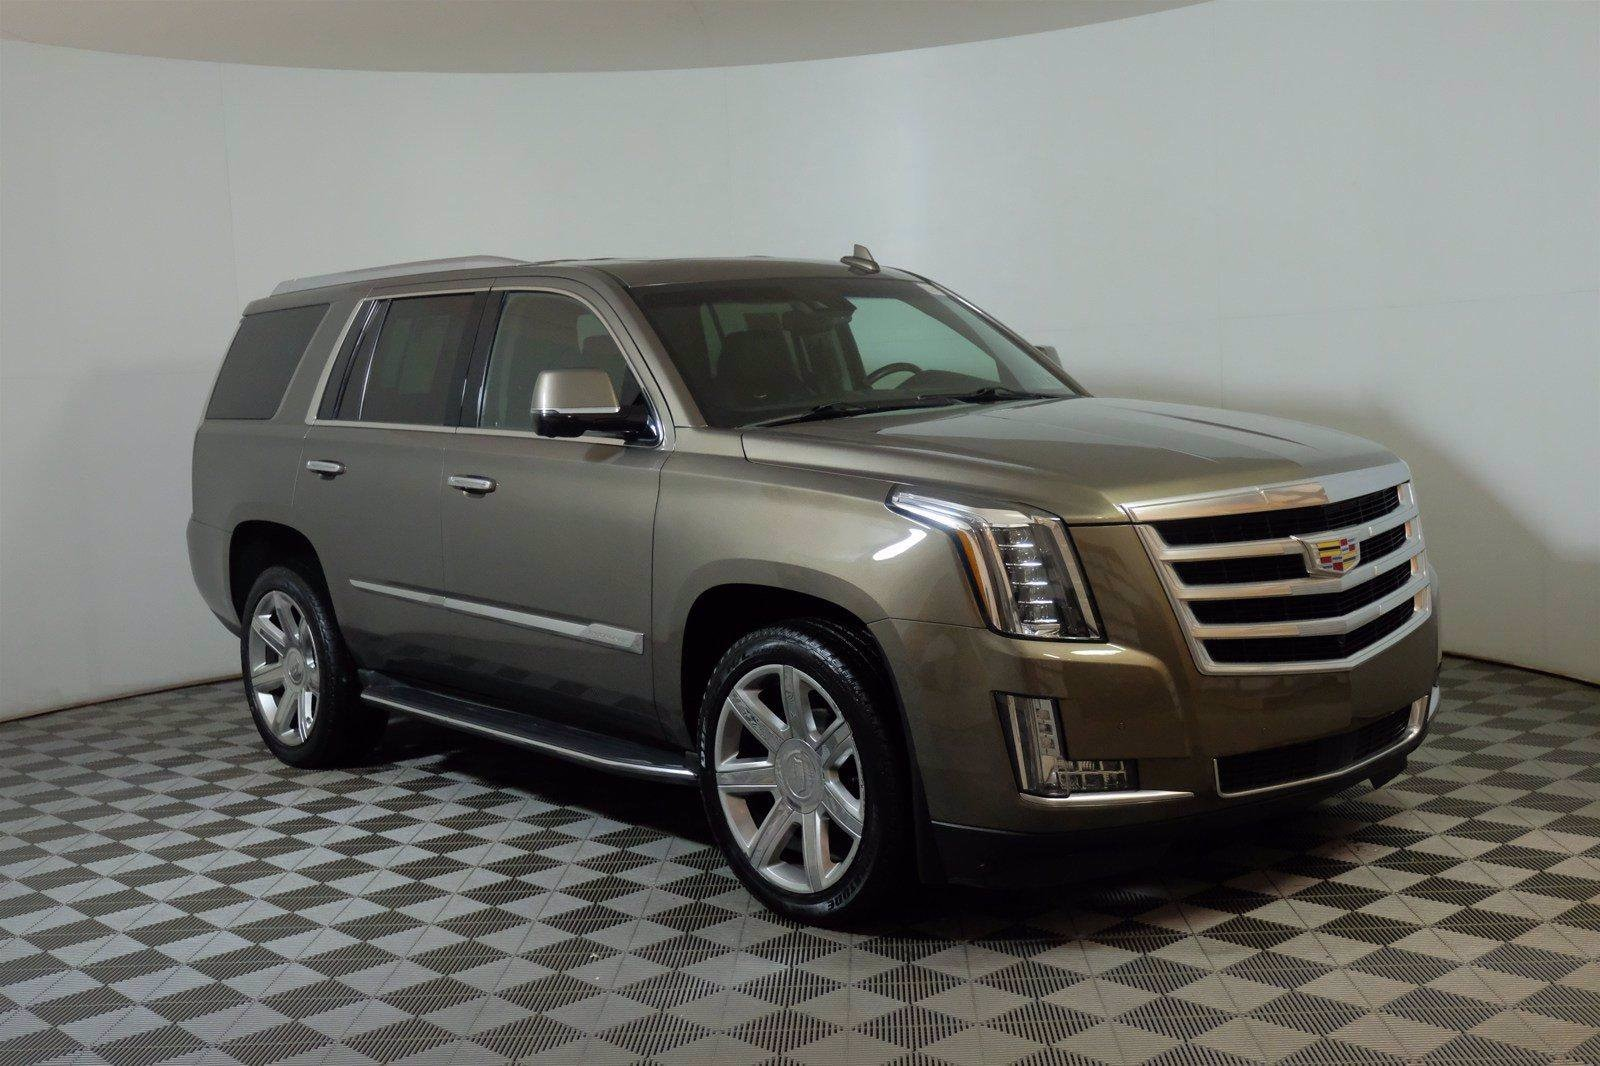 Used Cadillac Escalade Doylestown Pa